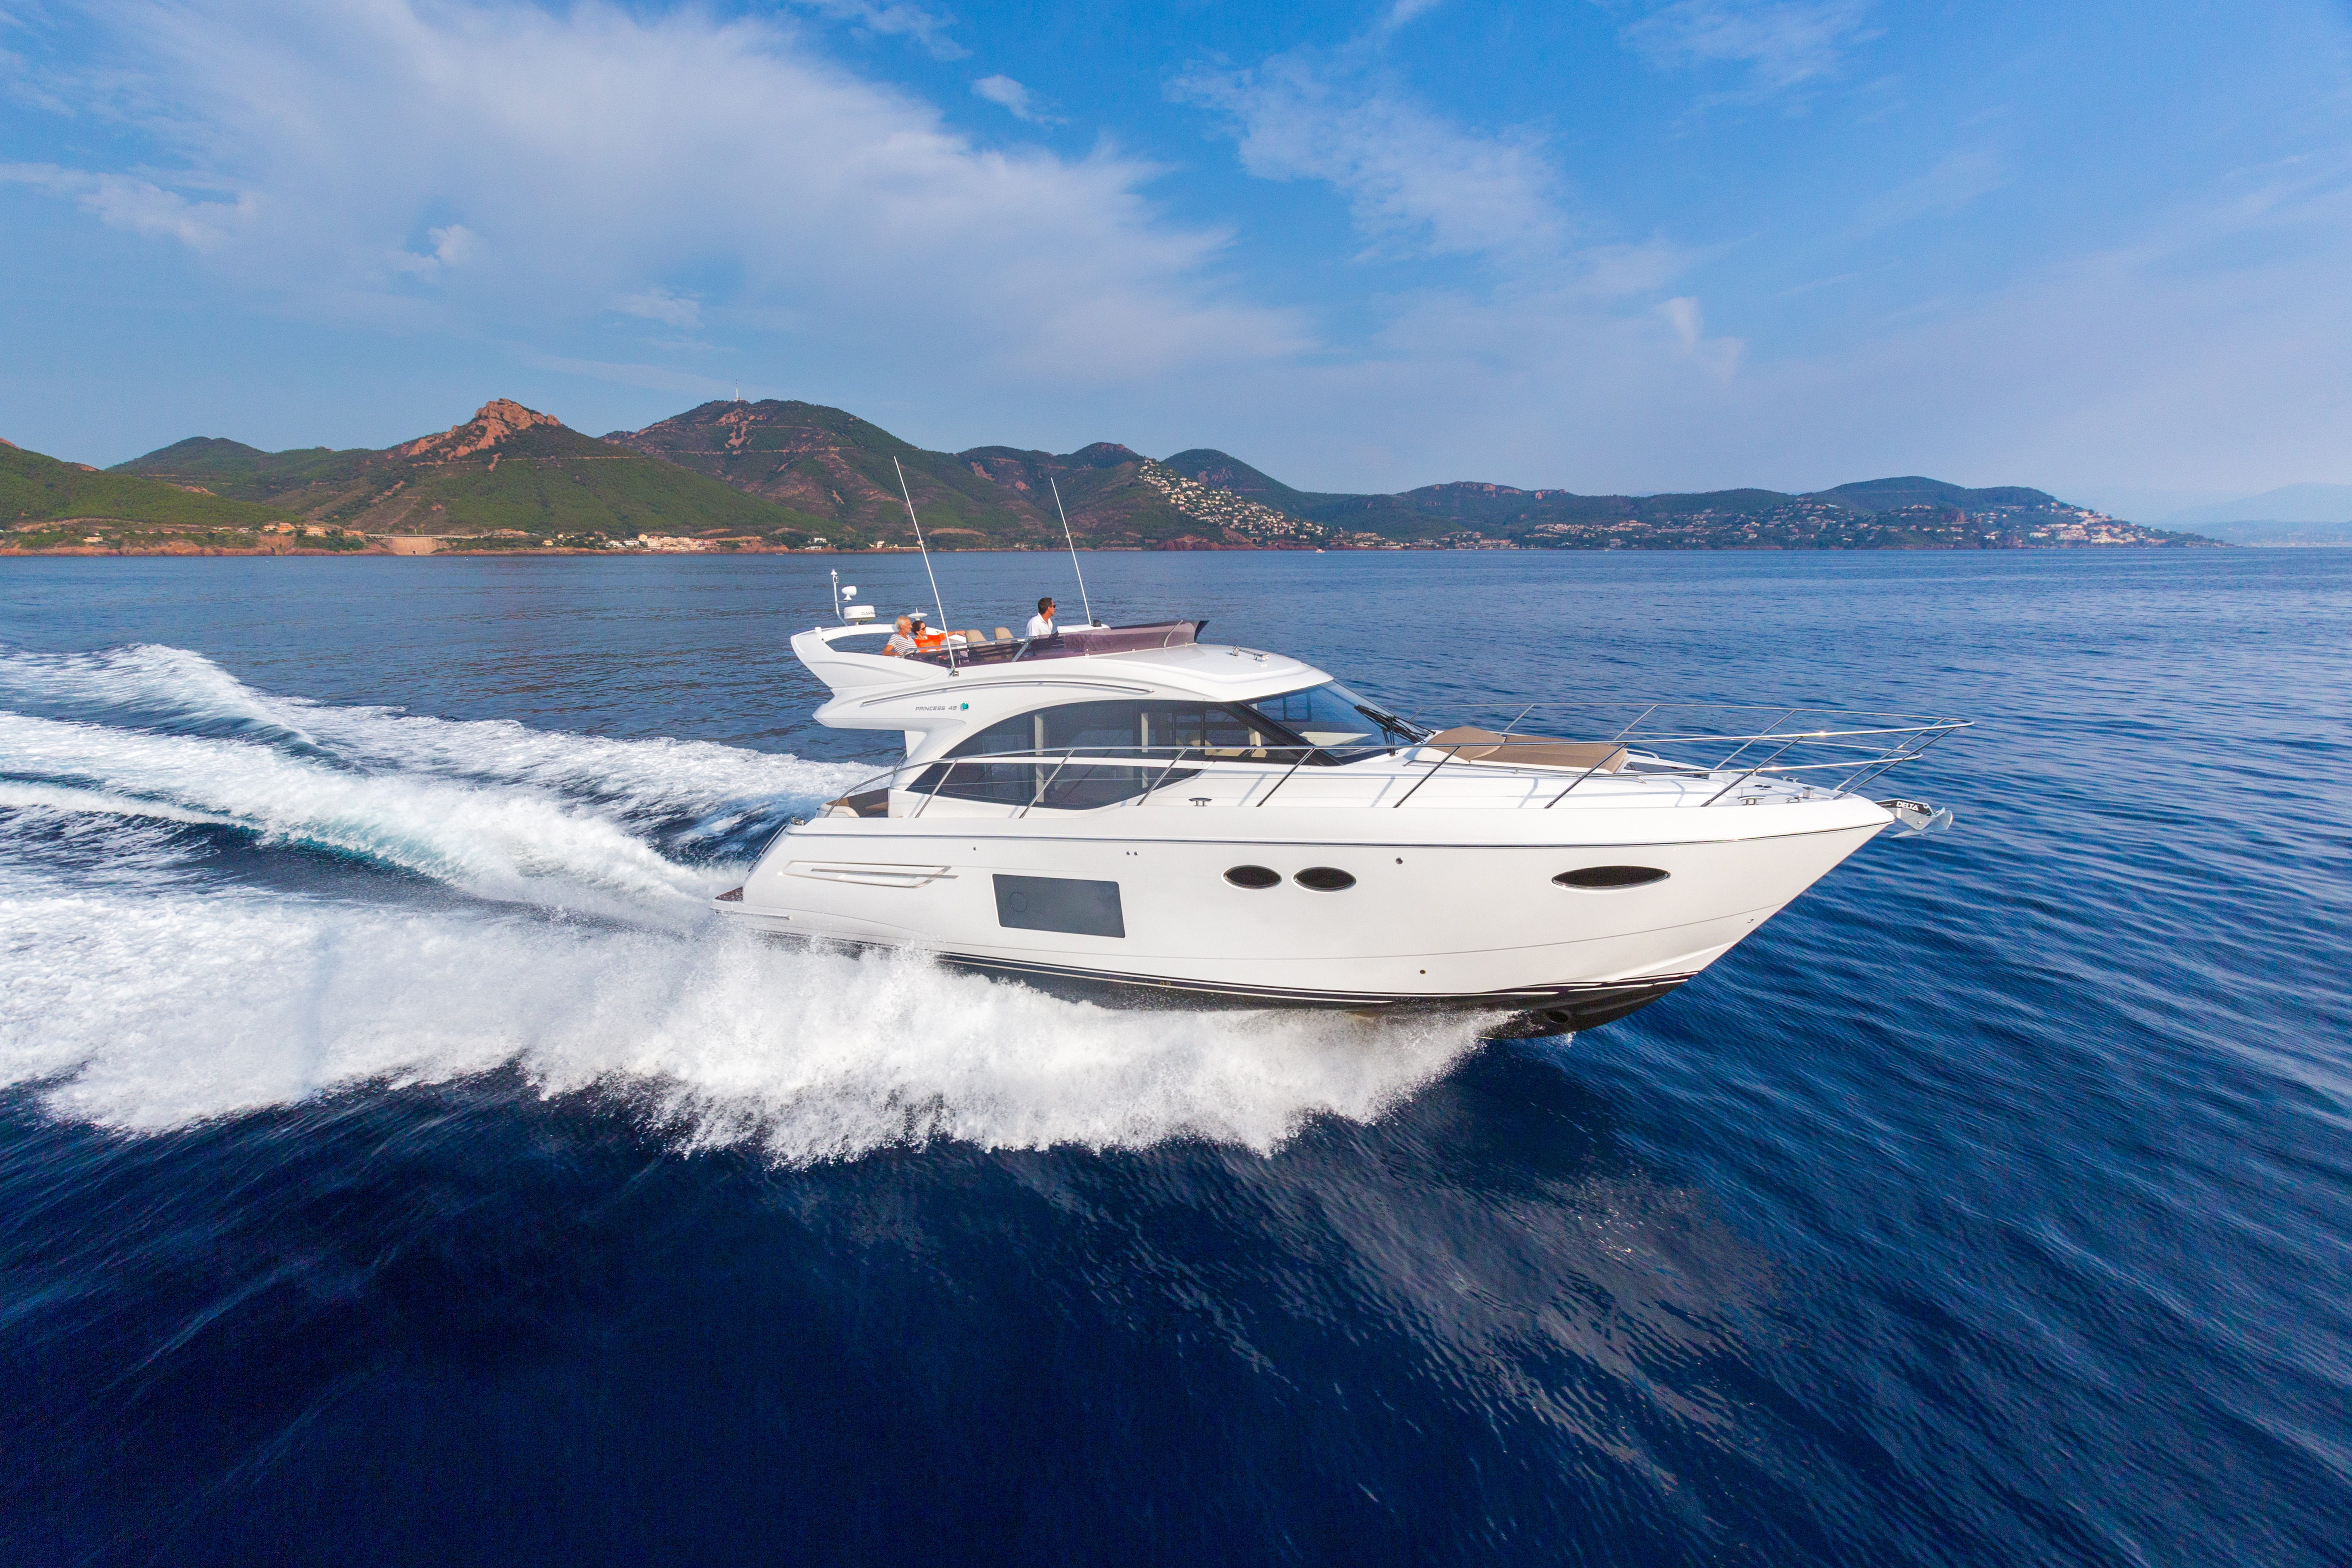 INTRODUCING THE SPACIOUS NEW PRINCESS 49